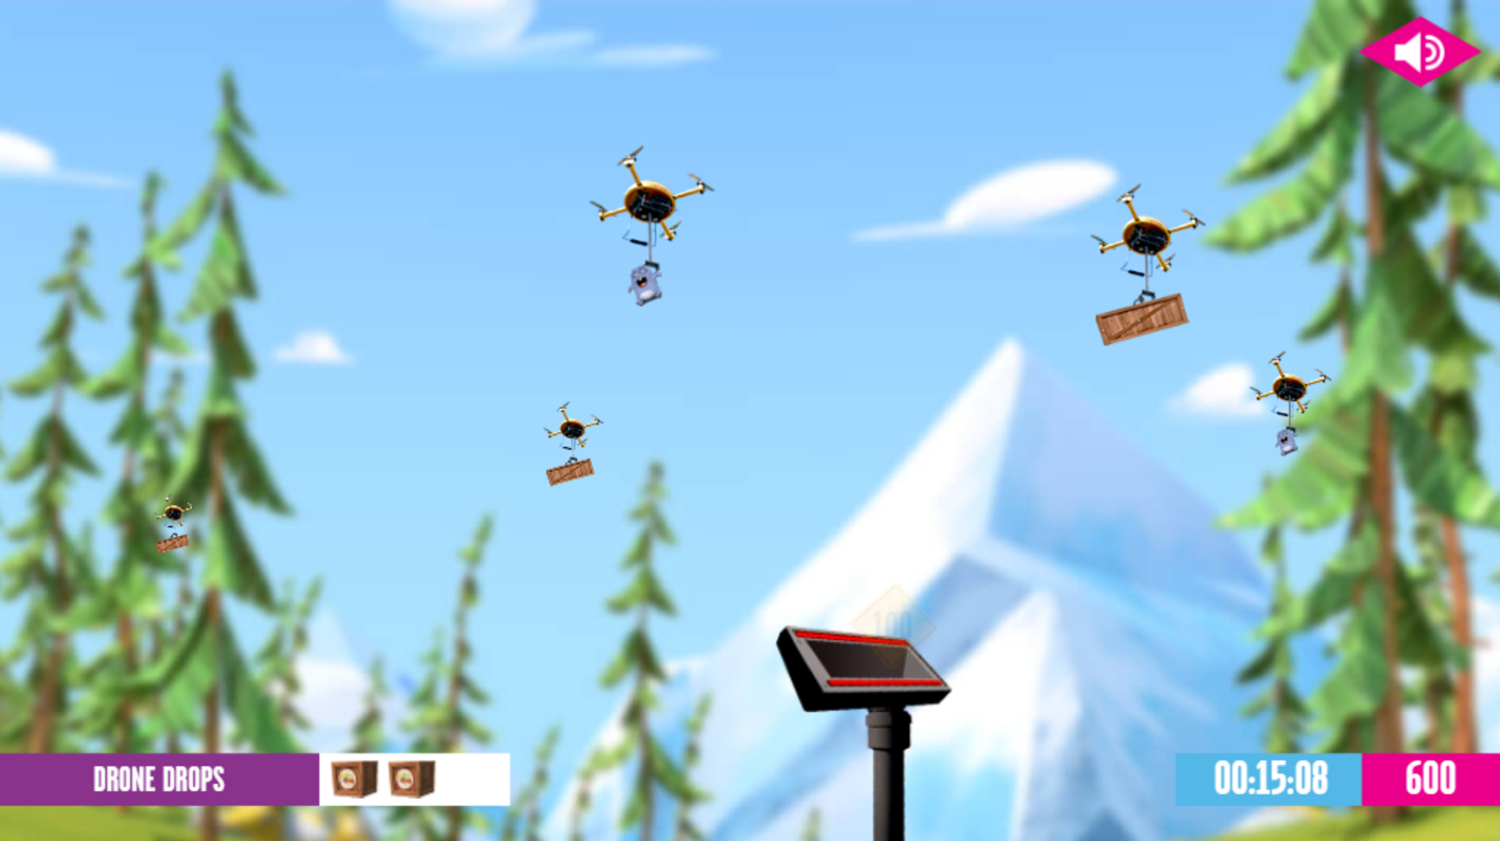 Grizzy and the Lemmings Drone Drops Game Play Screenshot.